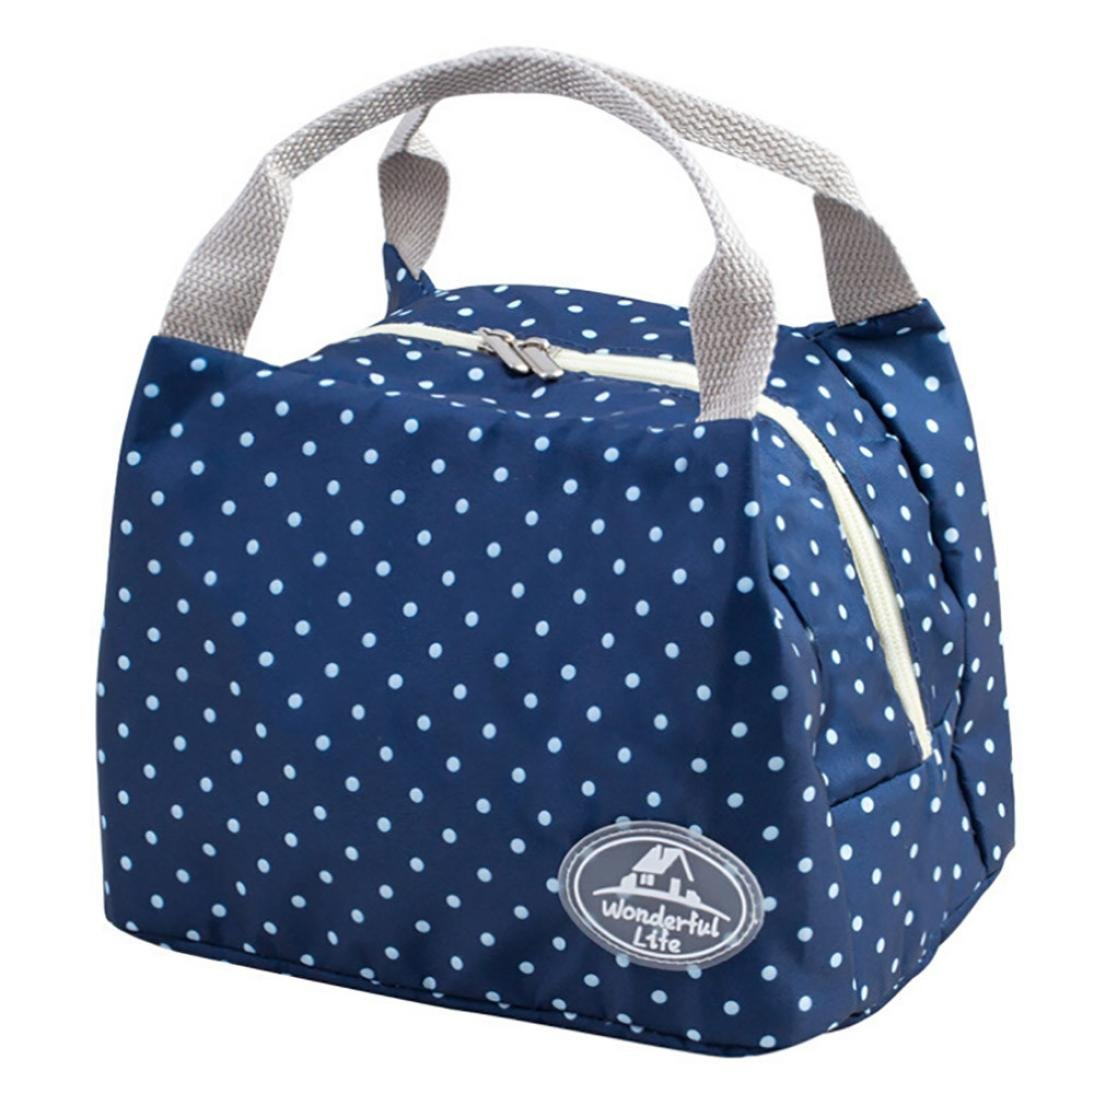 KFSO Lunch Bag Clearance Sale! Square Insulated Cold Canvas Dot Stripe Picnic Carry Case Thermal Portable Zipper Lunch Bag (D)